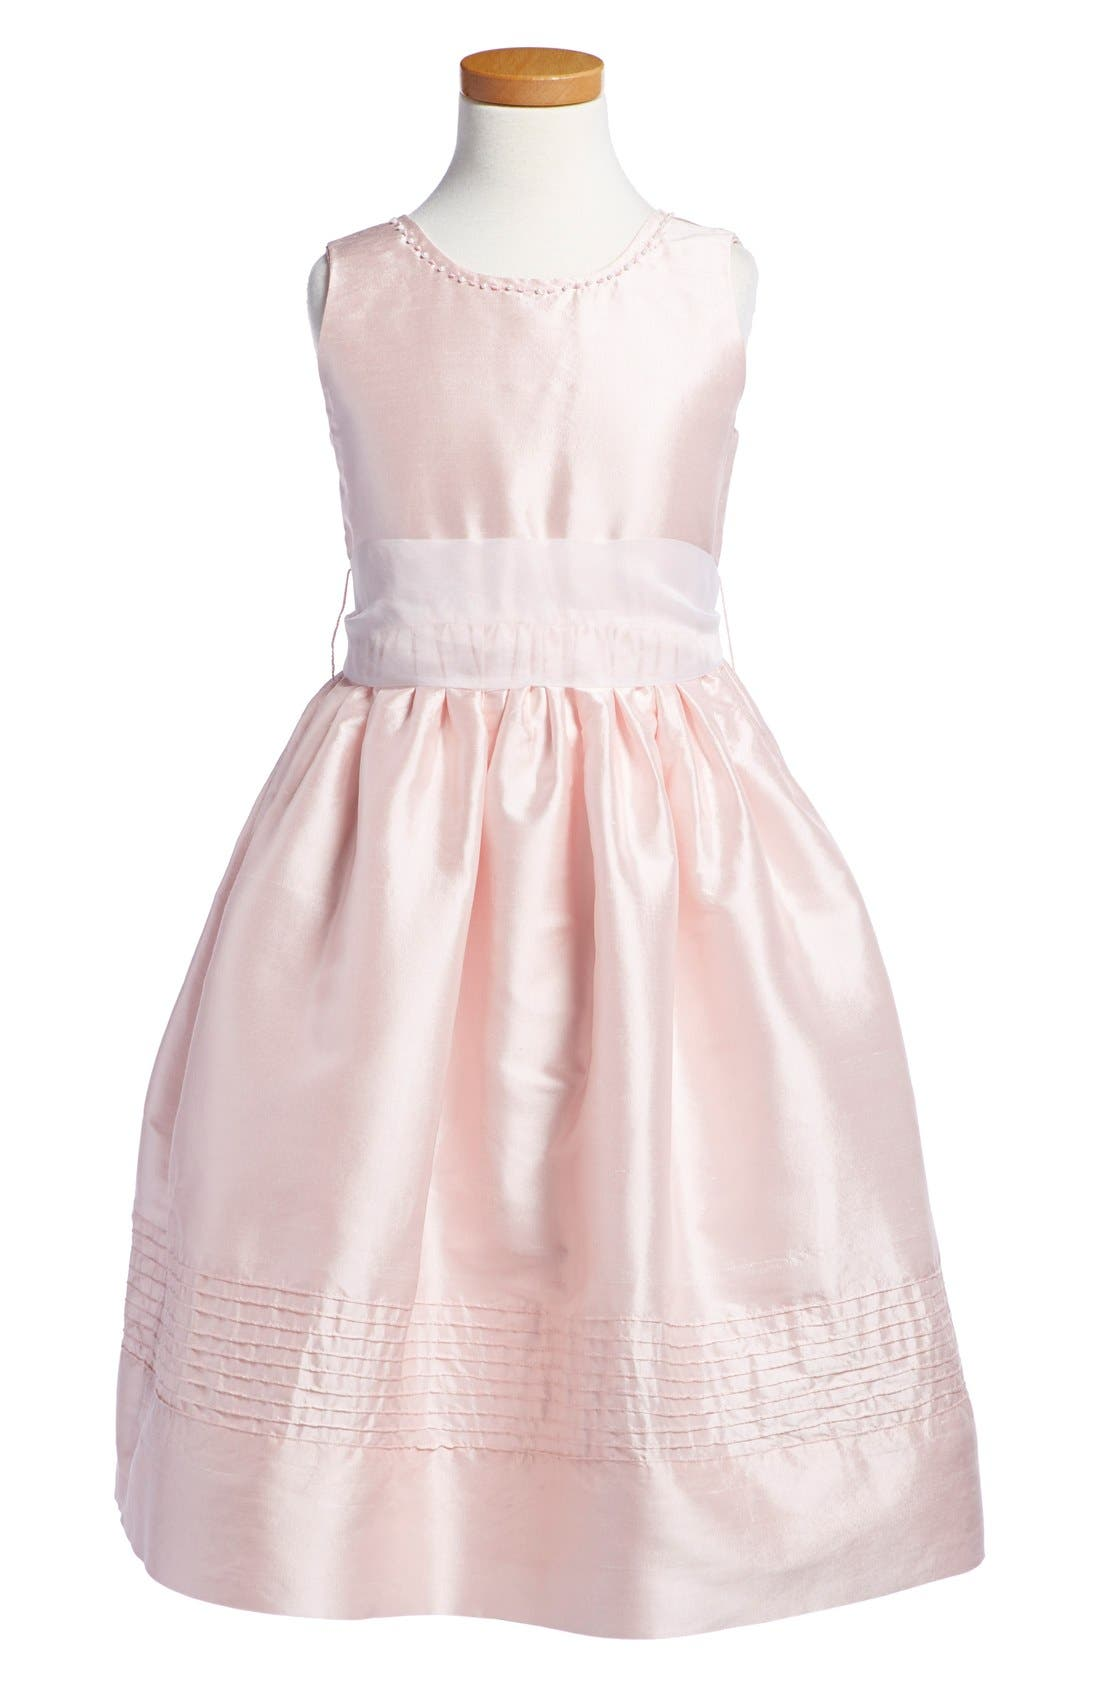 Isabel Garreton 'Melody' Sleeveless Dress (Little Girls & Big Girls)